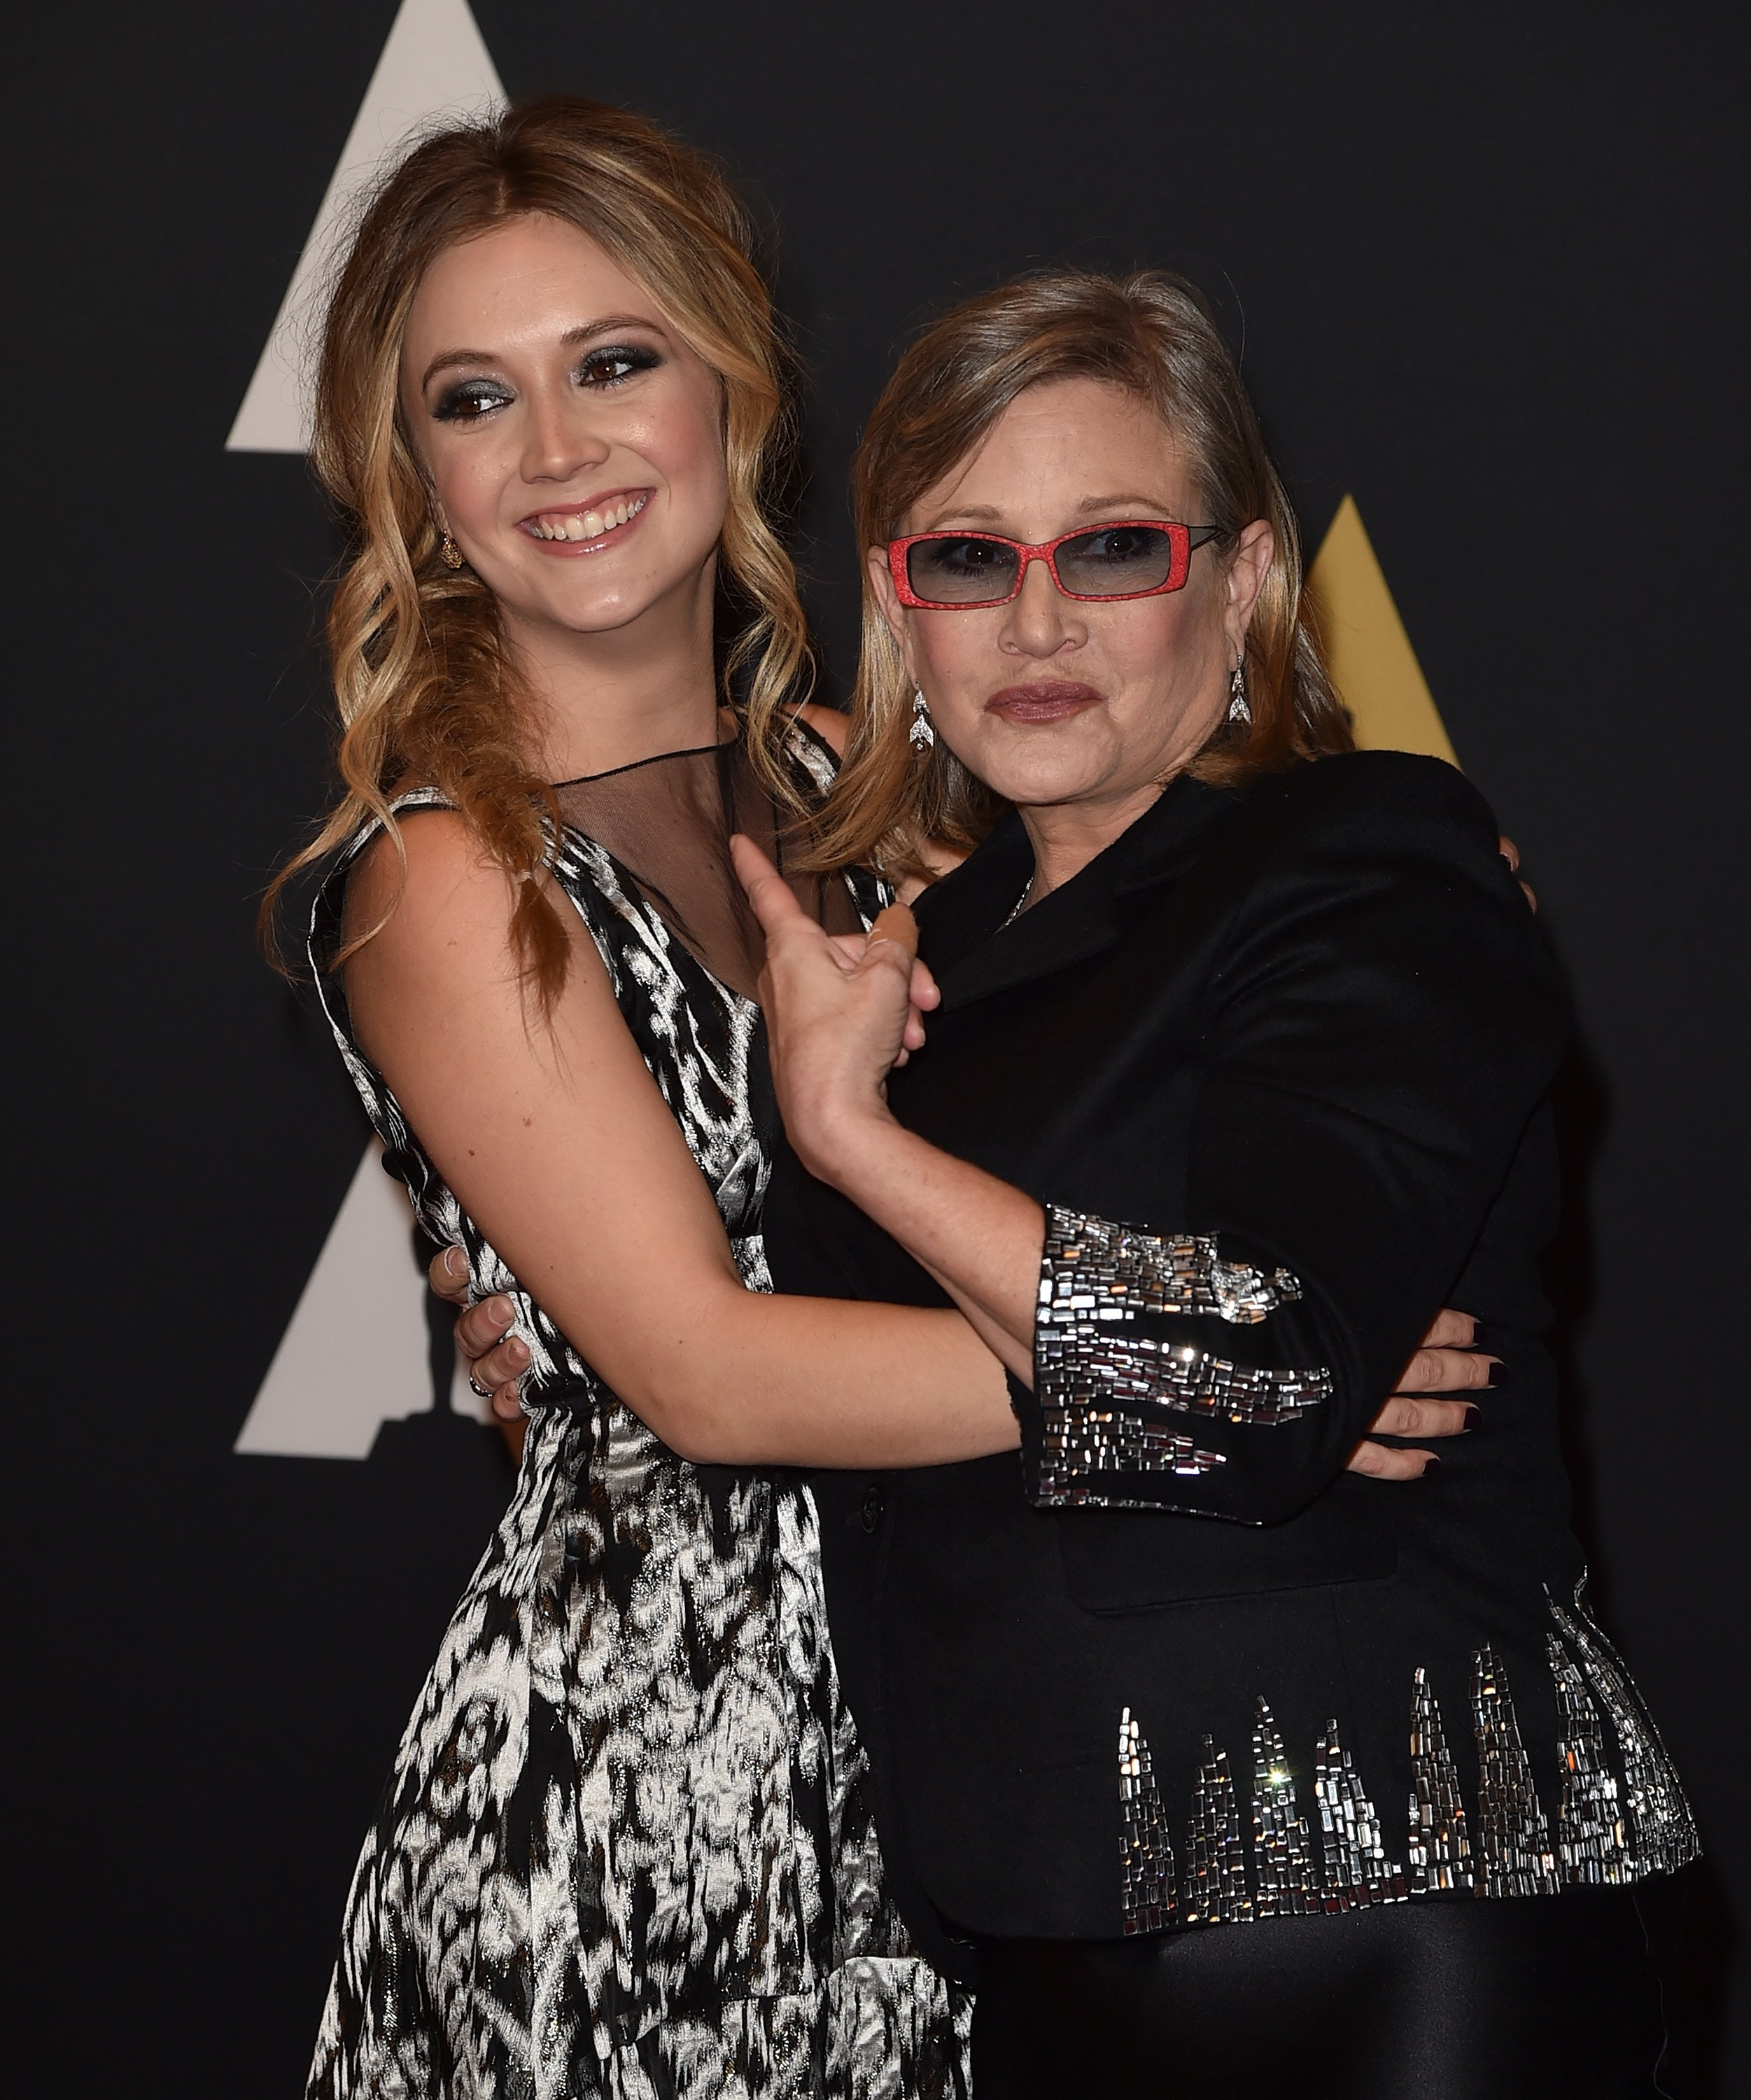 Carrie Fisher and Billie Catherine Lourd attend the Academy of Motion Picture Arts and Sciences' 7th annual Governors Awards at The Ray Dolby Ballroom at Hollywood & Highland Center on November 14, 2015 in Hollywood, California | Photo: Getty Images